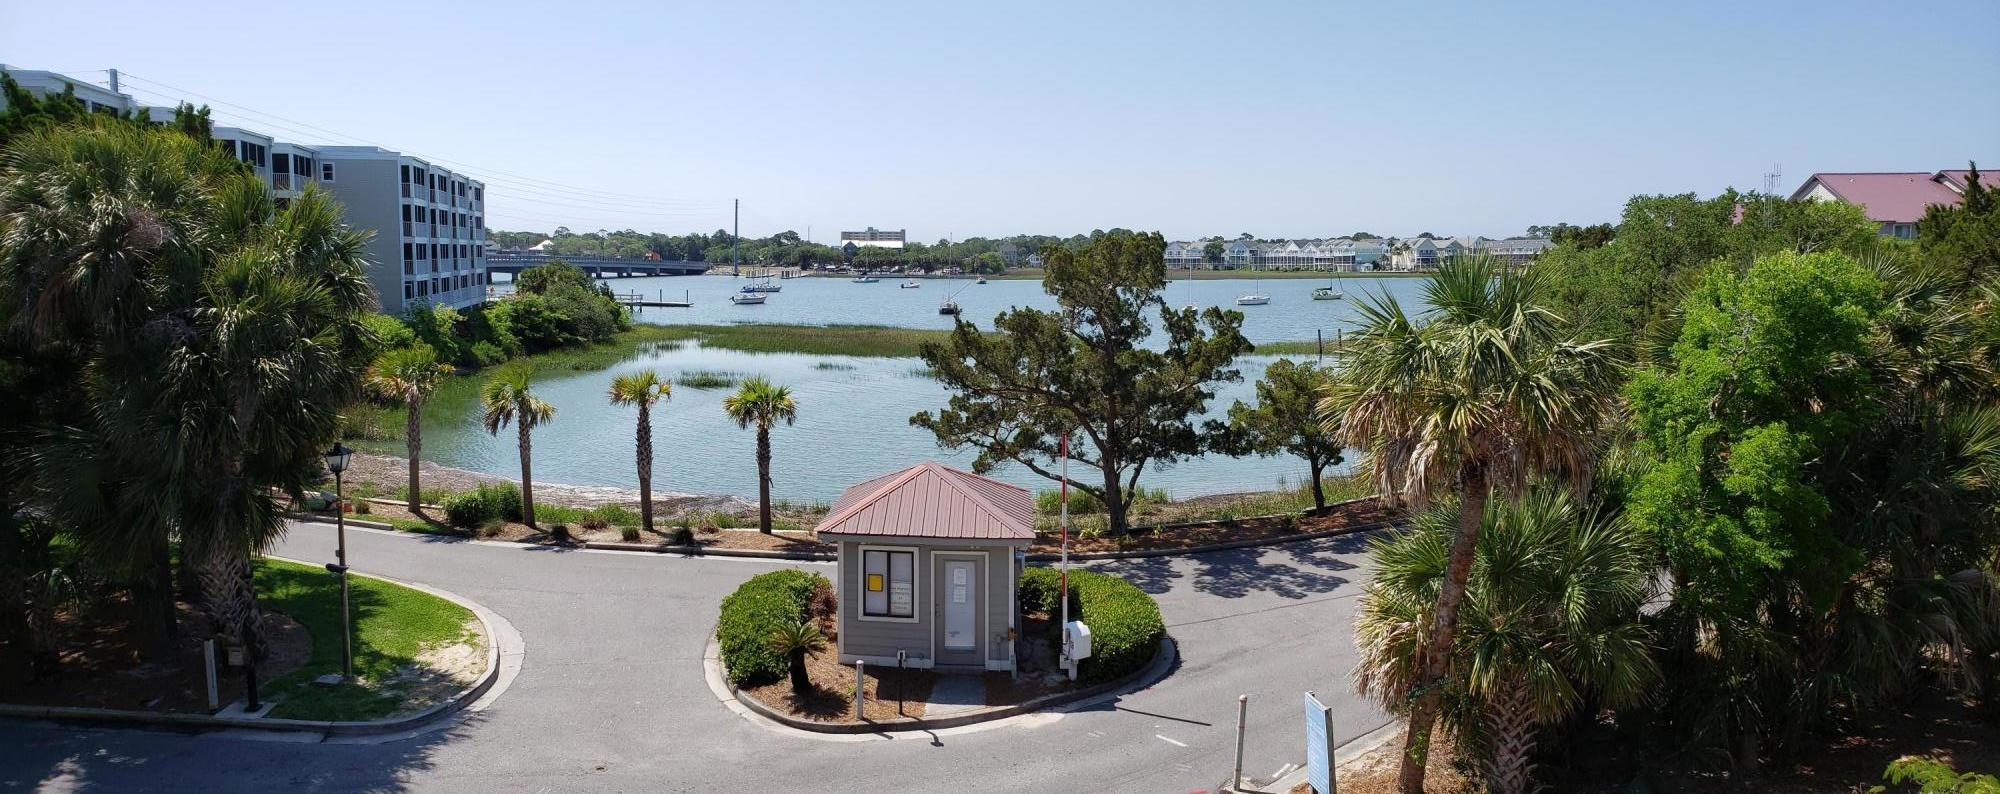 Mariners Cay Homes For Sale - 1004 Mariners Cay, Folly Beach, SC - 36